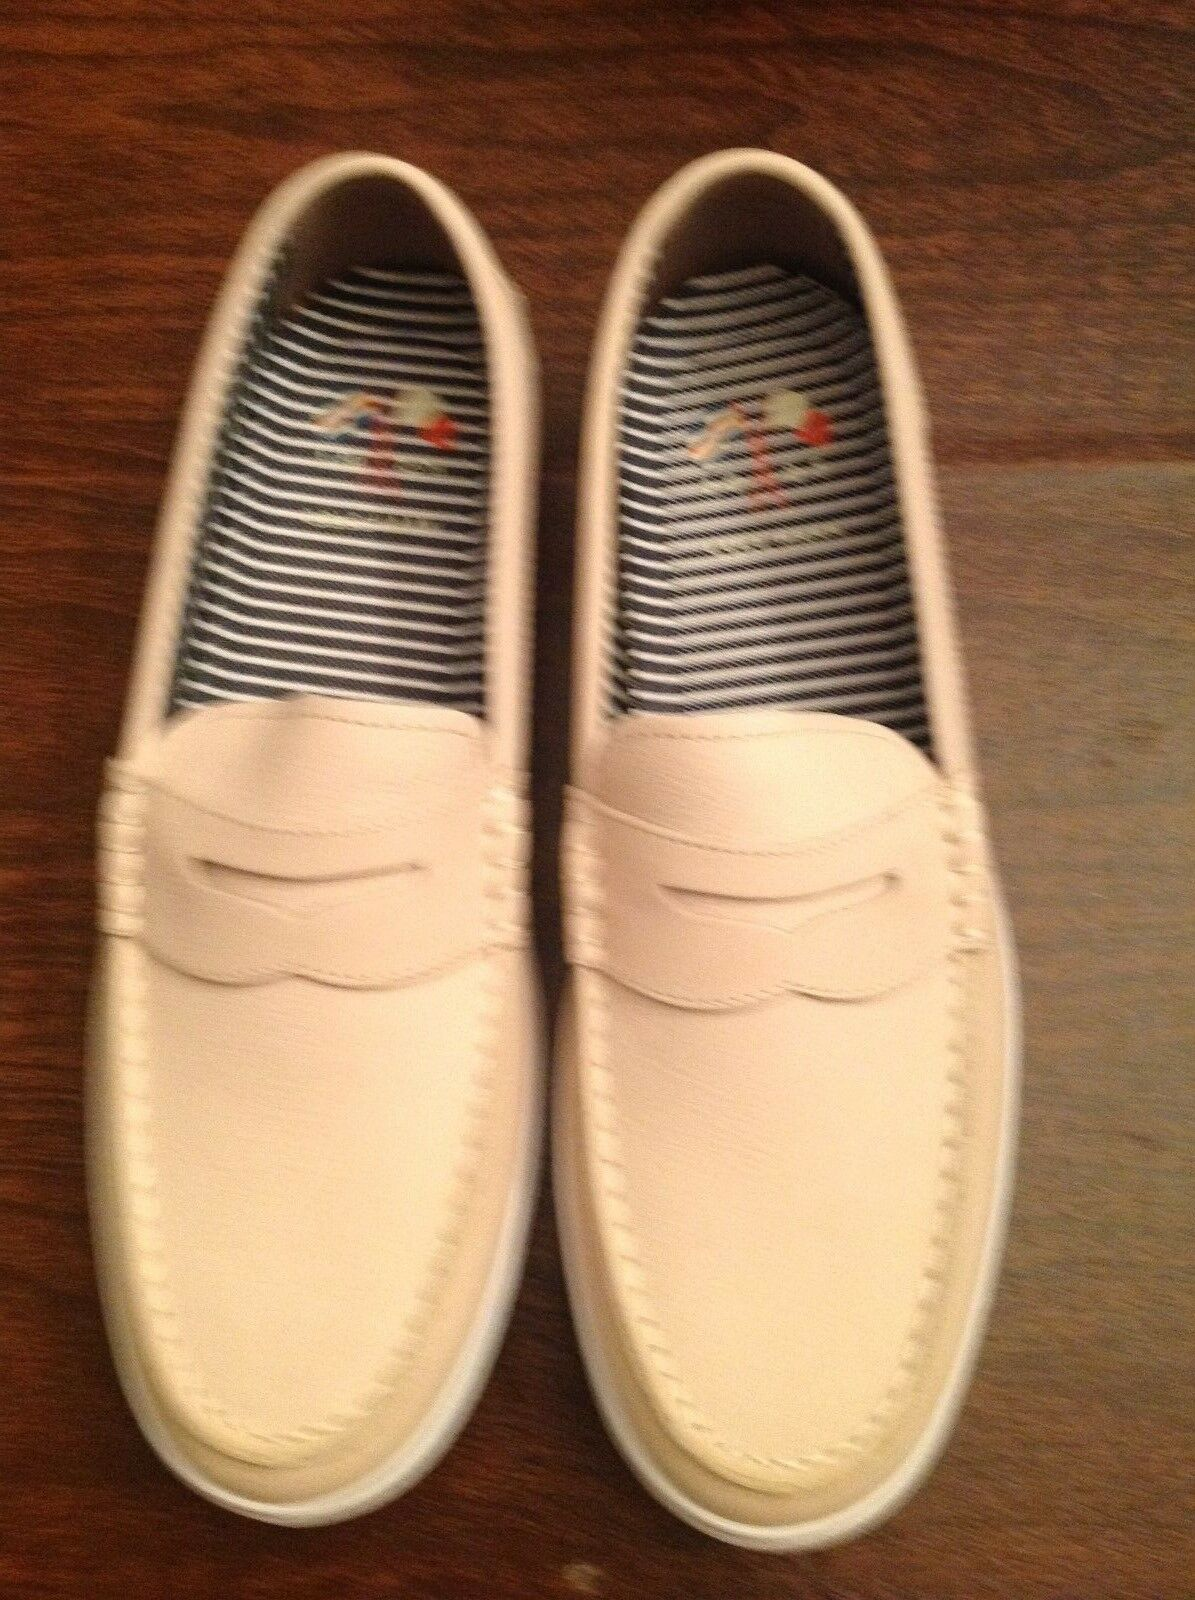 Cole Haan Men's Nantucket II Light Tan Leather Loafers  Size: 11.5M  New in Box